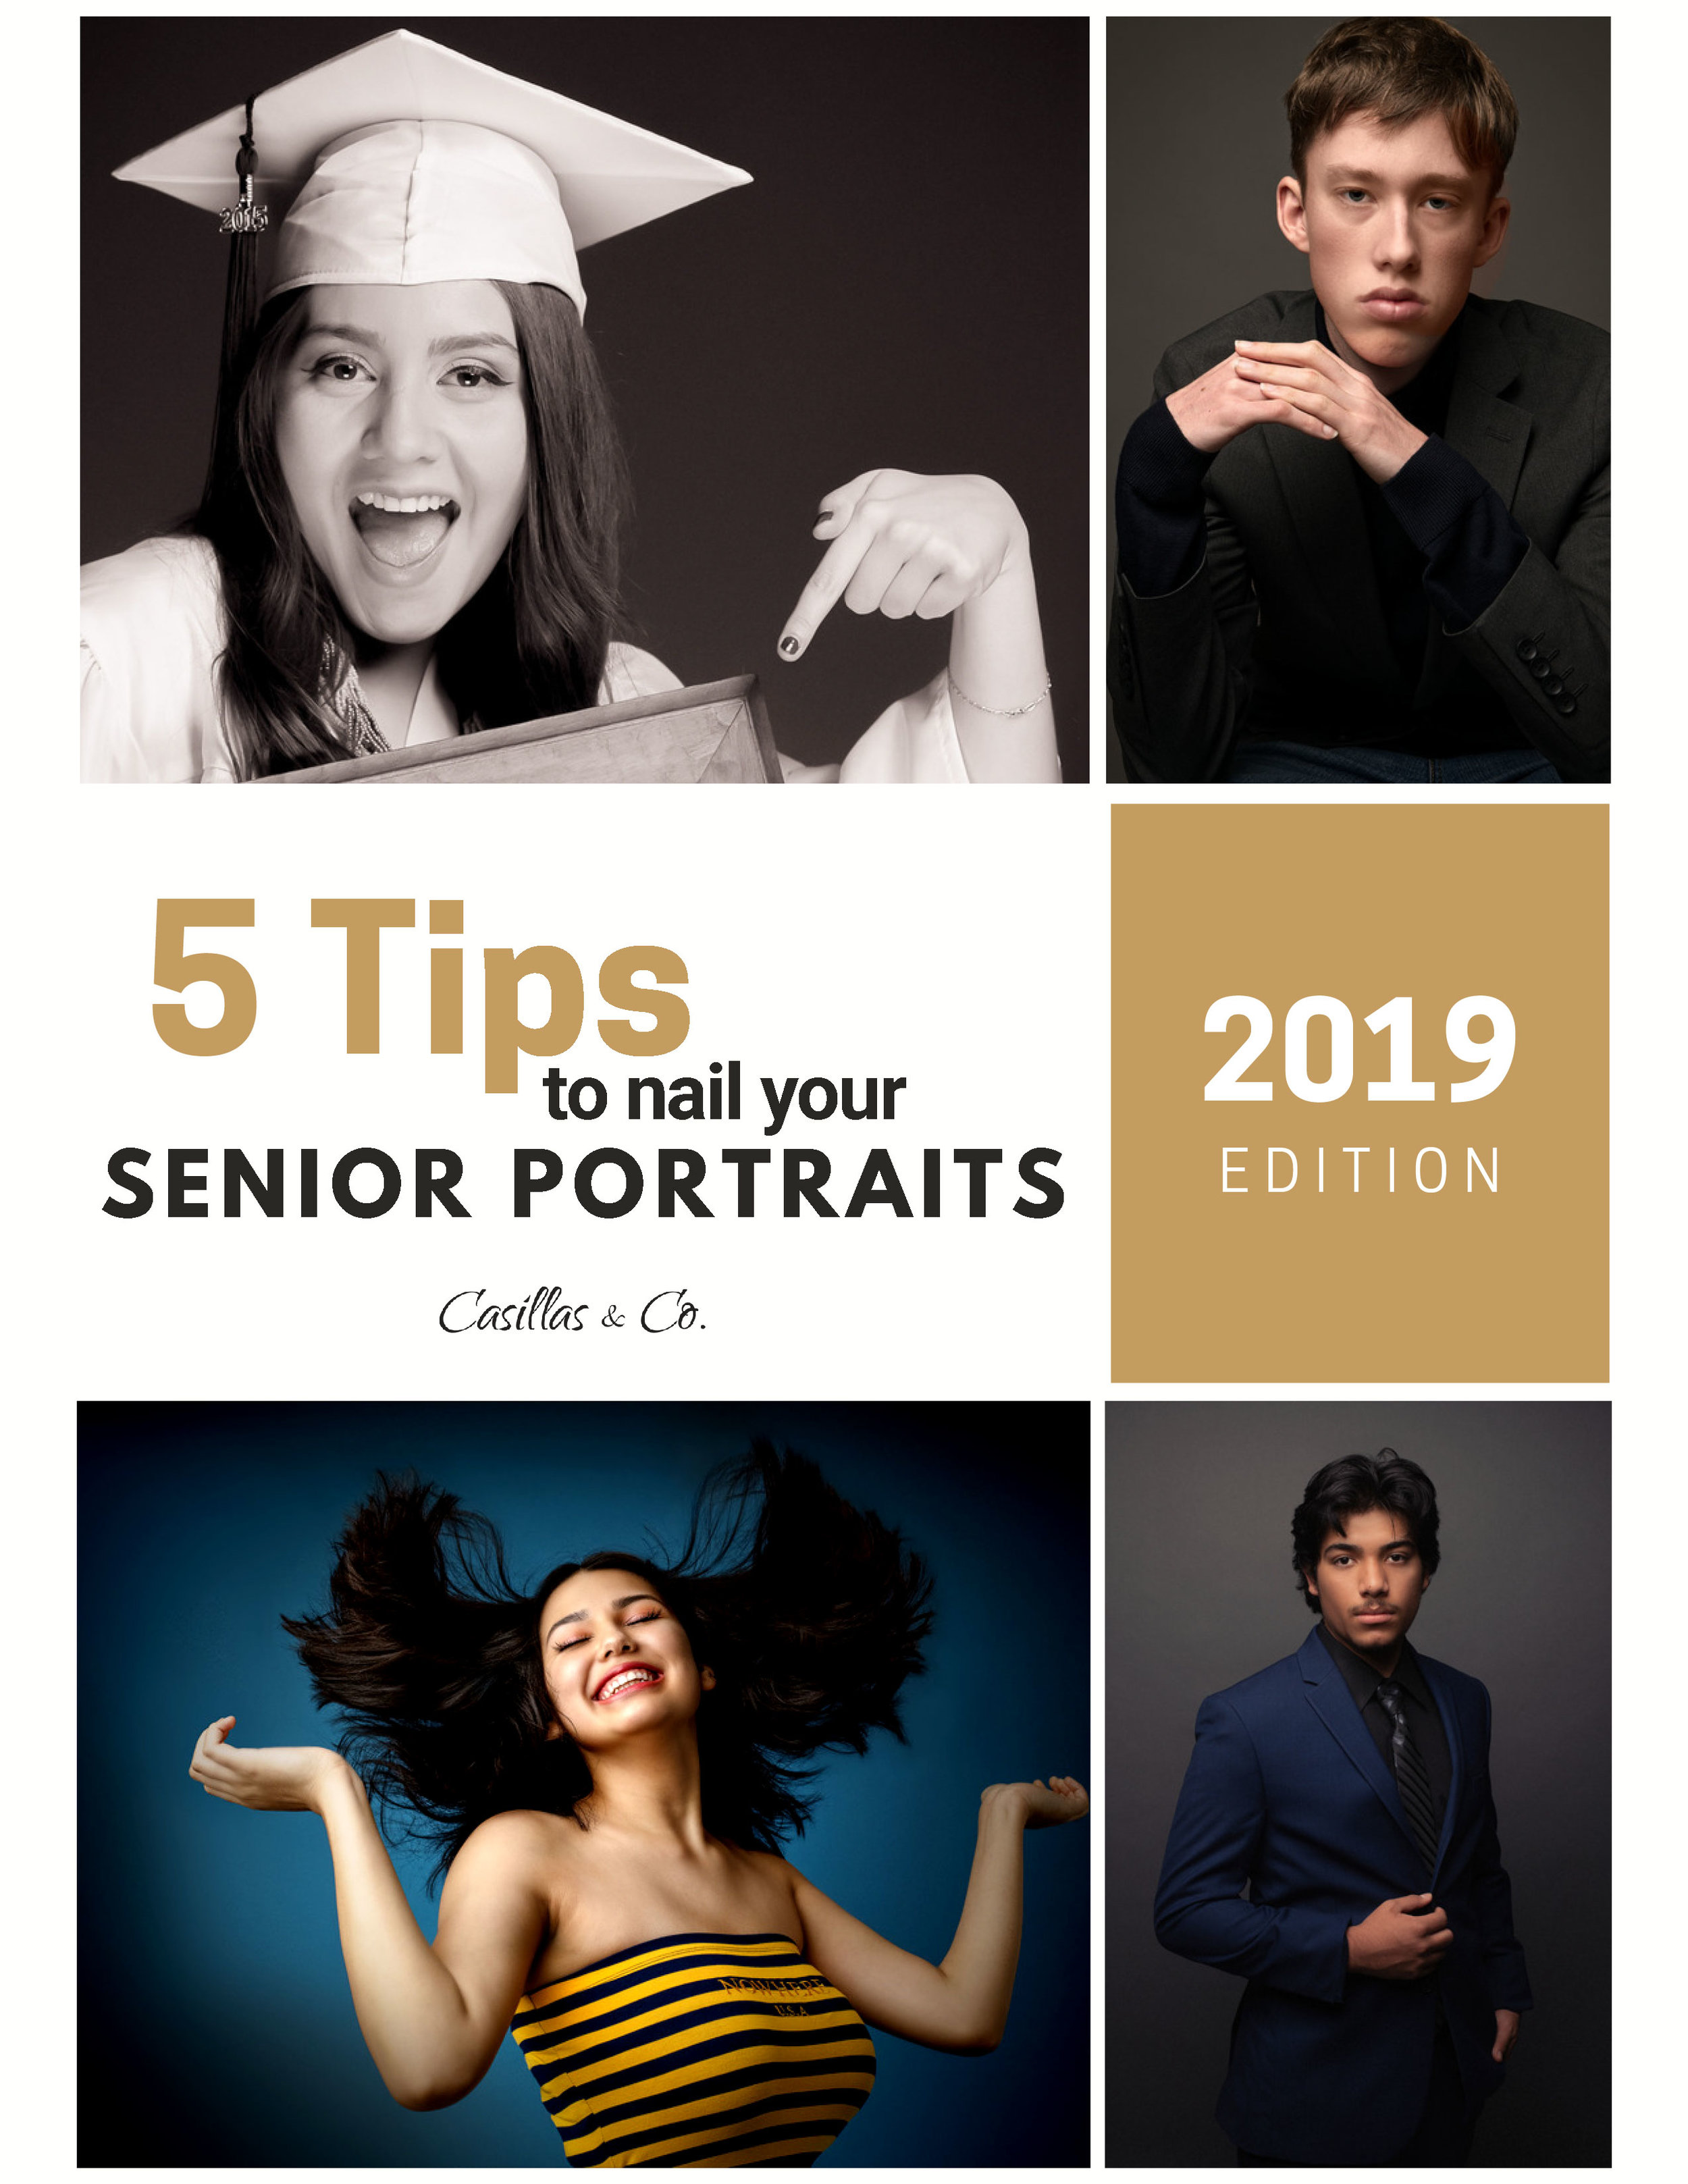 CasillasandCo-5-tips-to-nail-your-senior-portraits-cover.jpg